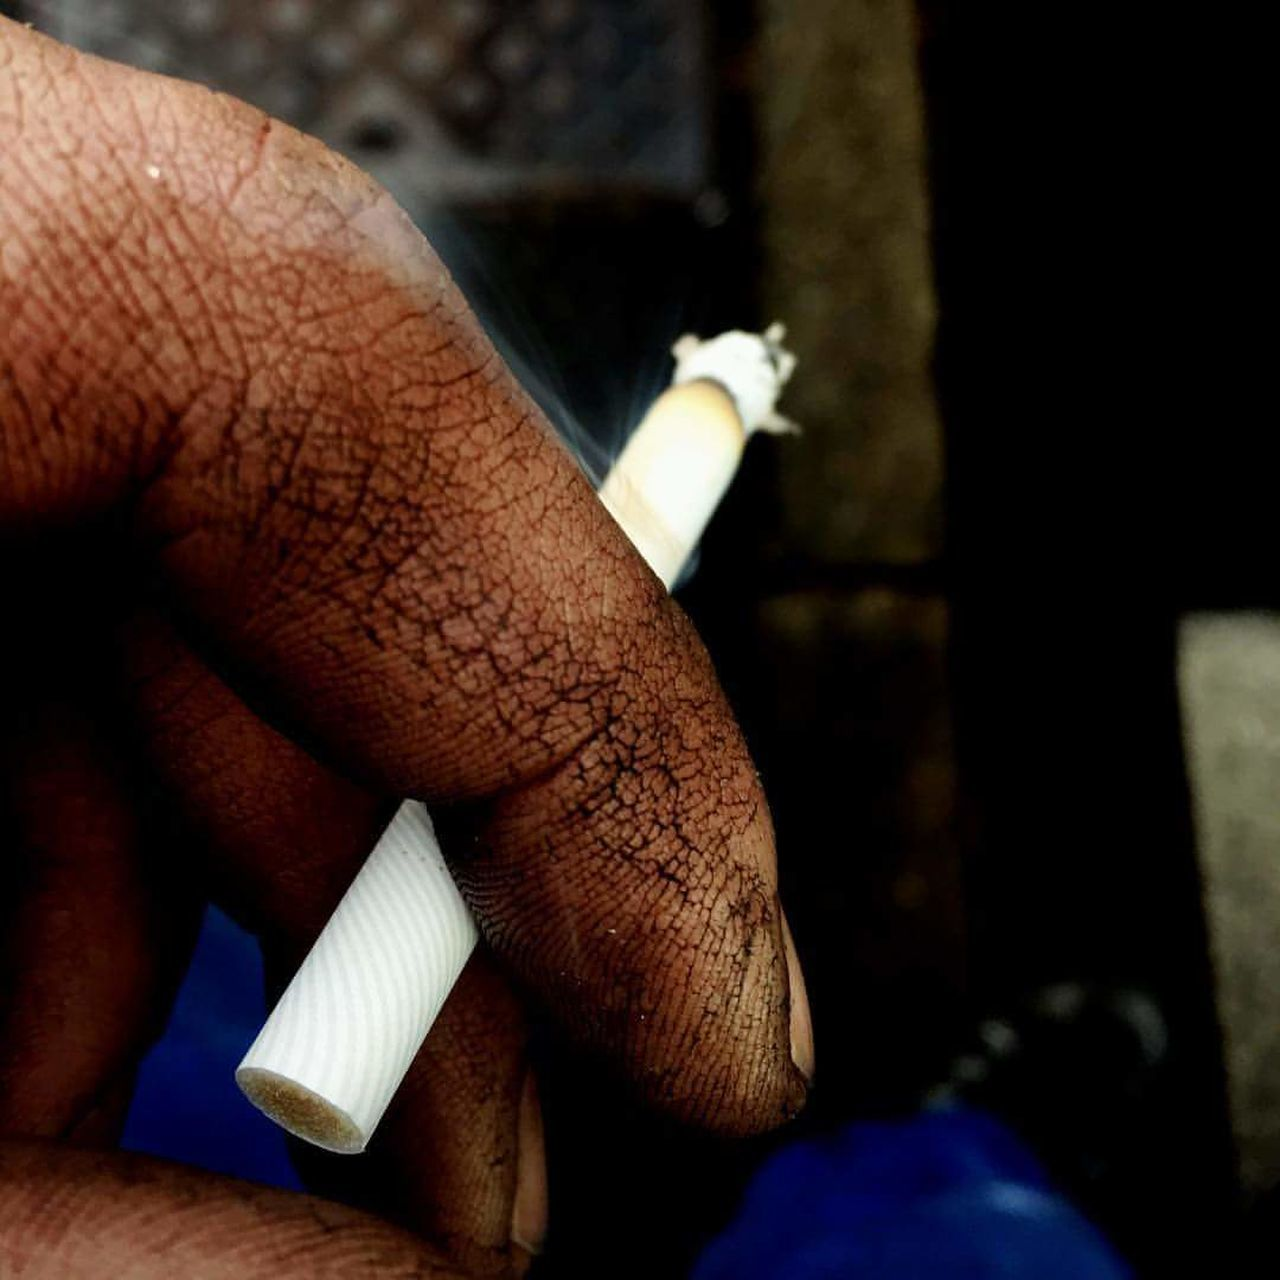 Human Hand Human Body Part Human Finger Real People Adults Only One Person Adult People Men One Man Only Close-up Day Only Men Work Working Dirty Dirtyhands Smoke Smoking Cigarette  Marlboro